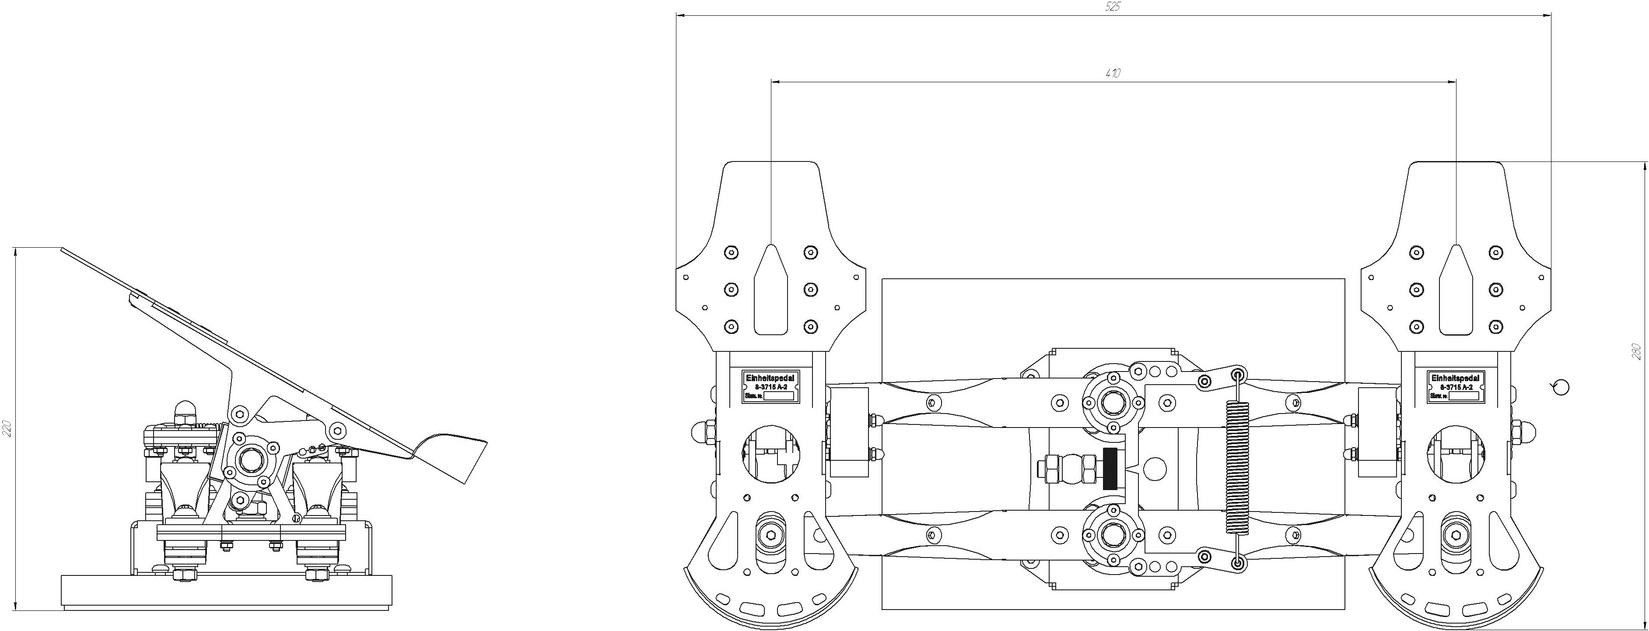 Design plan for the Slaw Device pedals, showing dimensions.